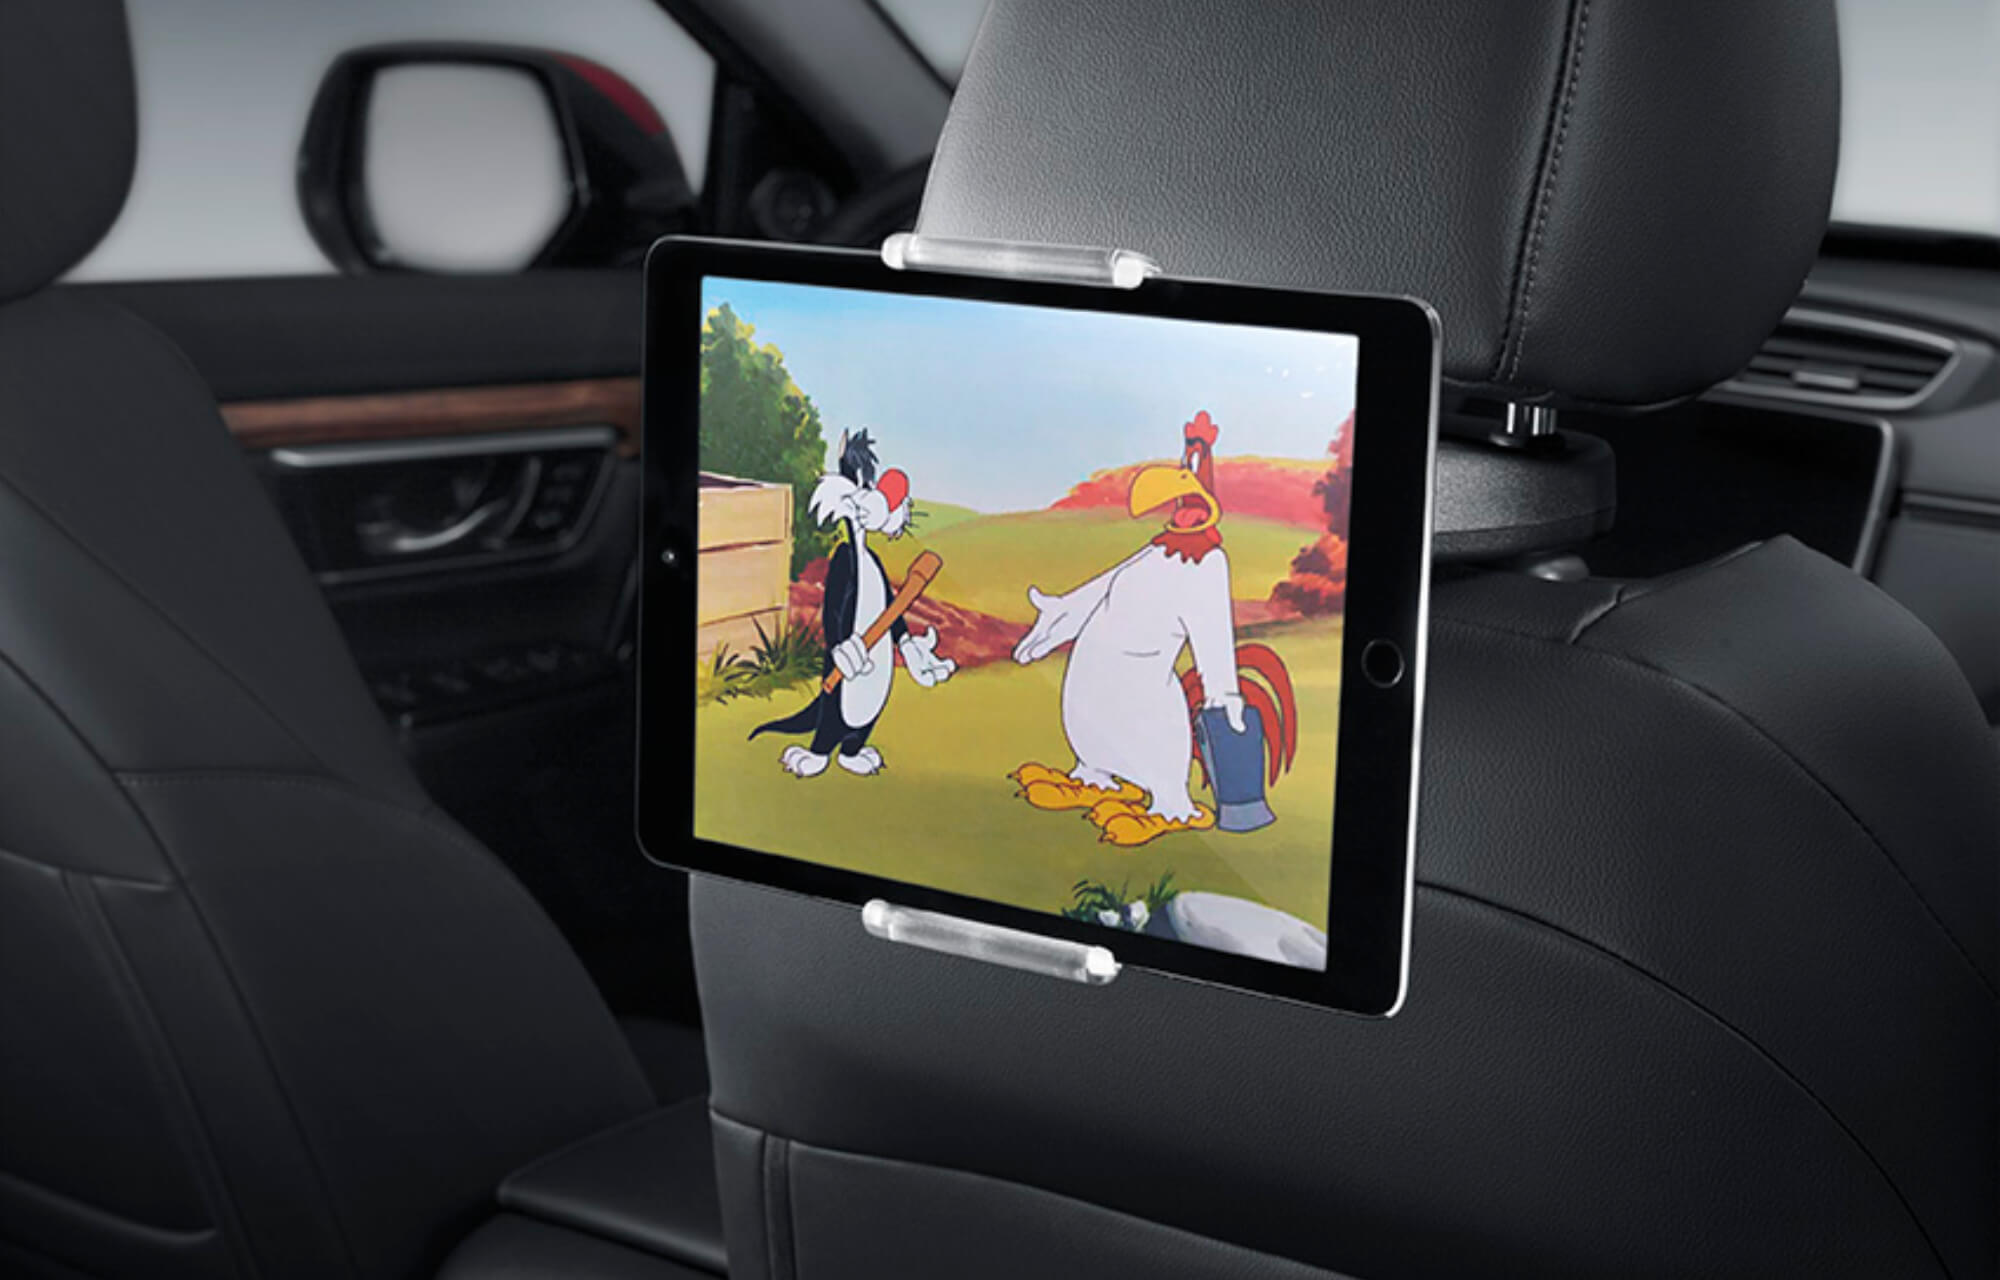 CR-V Tablet Holder